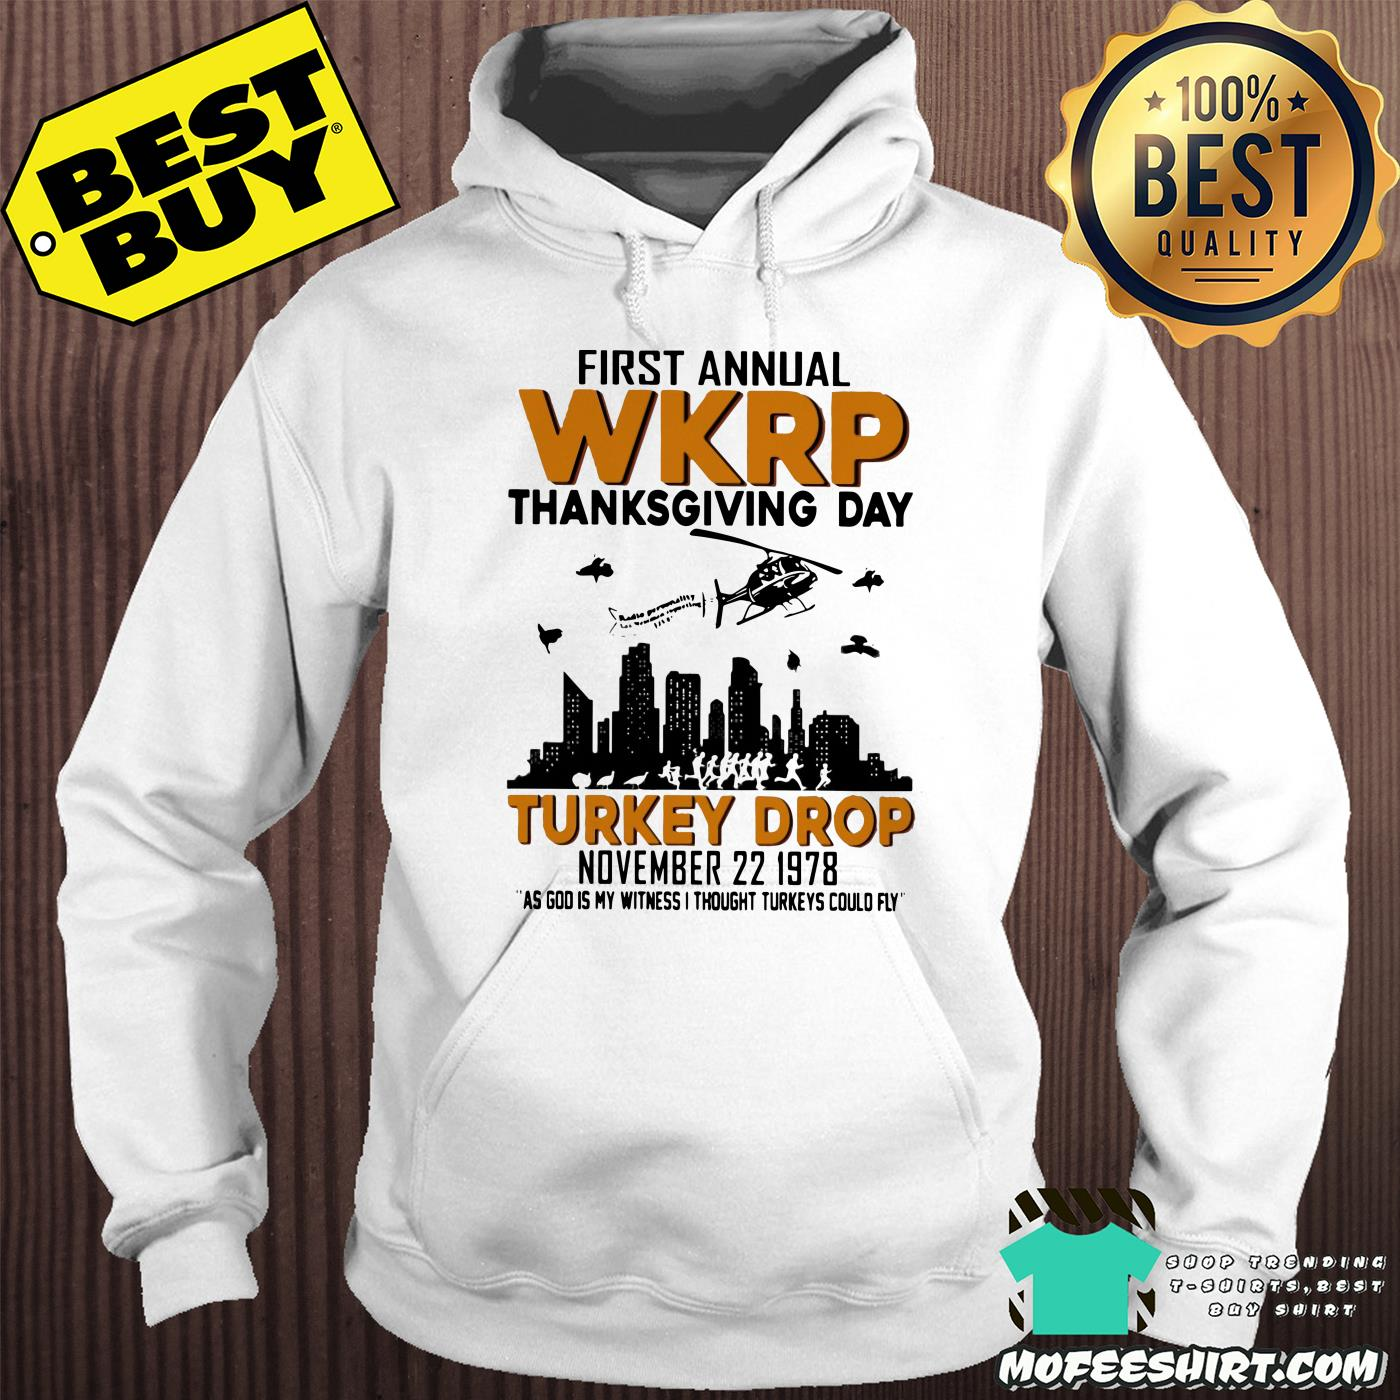 first annual wkrp thanksgiving day turkey drop november 22 1978 hoodie - First Annual Wkrp Thanksgiving Day Turkey Drop November 22 1978 Shirt